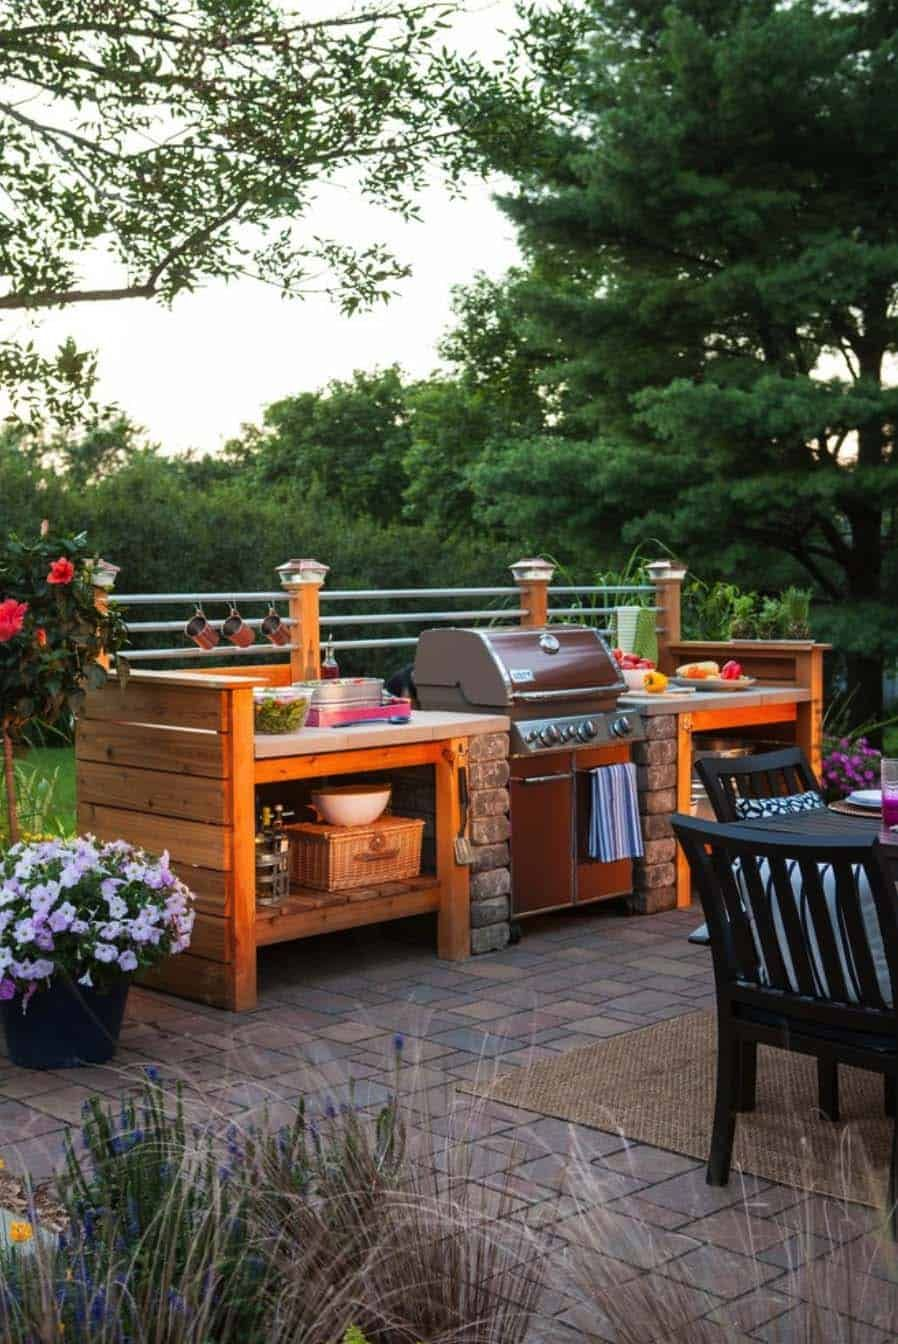 38 absolutely fantastic outdoor kitchen ideas for dining al fresco diy outdoor kitchen simple on outdoor kitchen easy id=58895